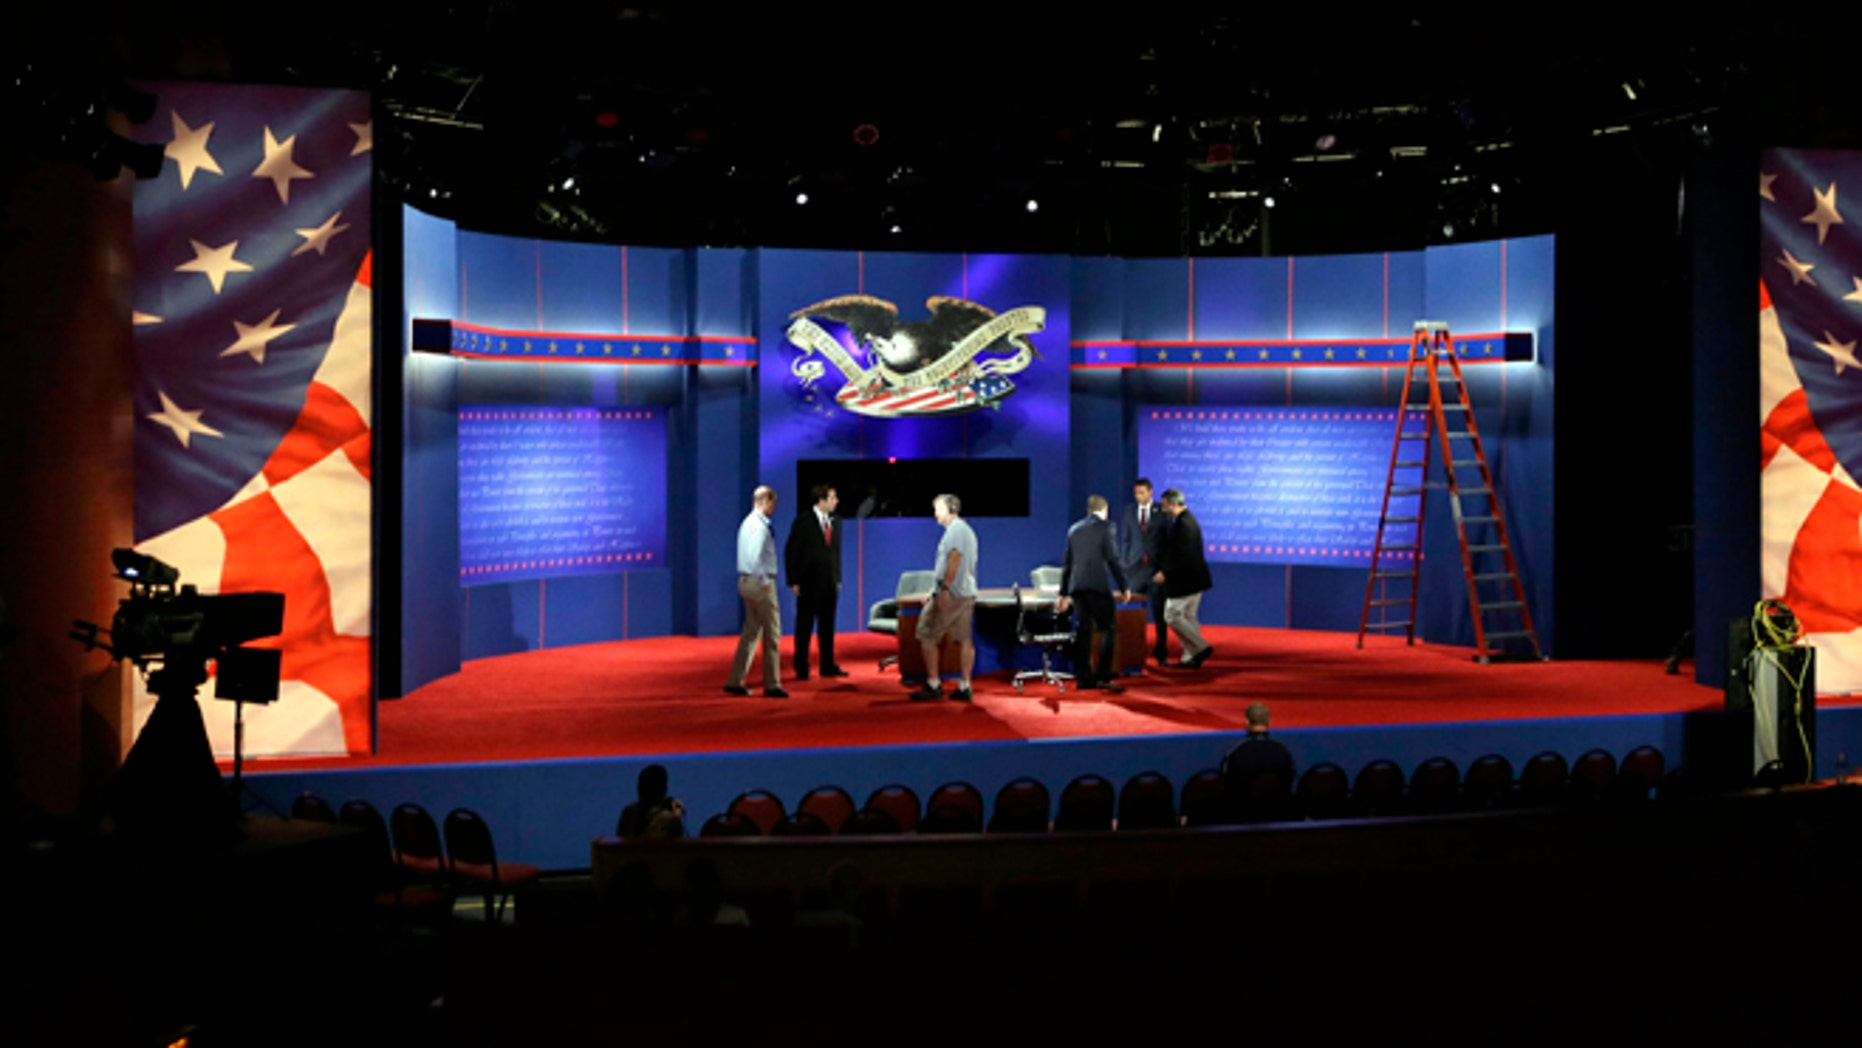 Oct. 21, 2012: Technicians work on the stage during final preparations for Monday's presidential debate between President Barack Obama and Republican presidential candidate, former Massachusetts Gov. Mitt Romney at Lynn University in Boca Raton, Fla.